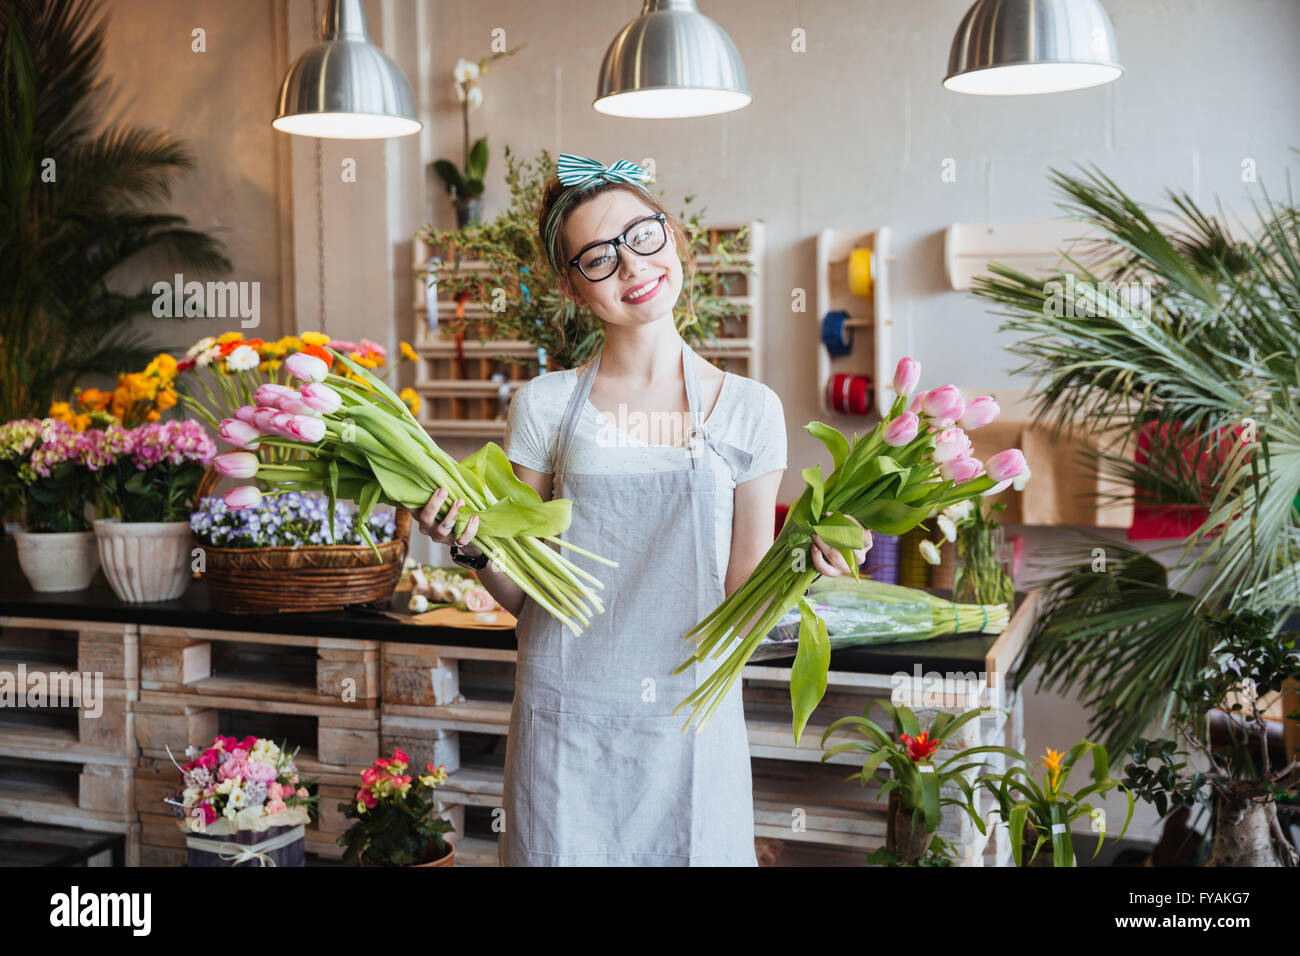 Cheerful charming young woman florist standing and holding two bunches of pink tulips in flower shop - Stock Image